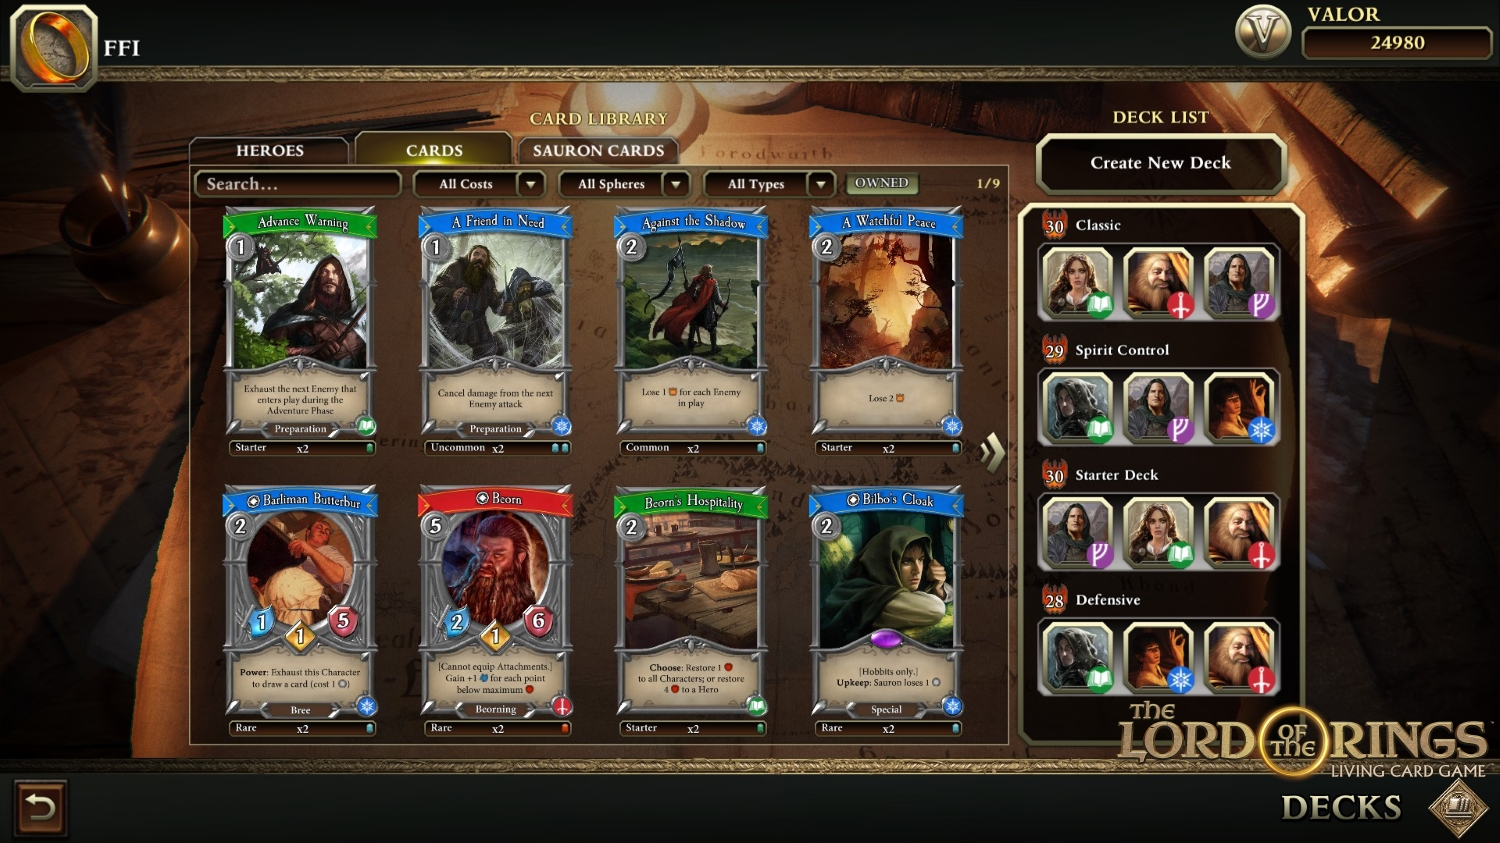 The Lord of the Rings Living Card Game screenshot 2